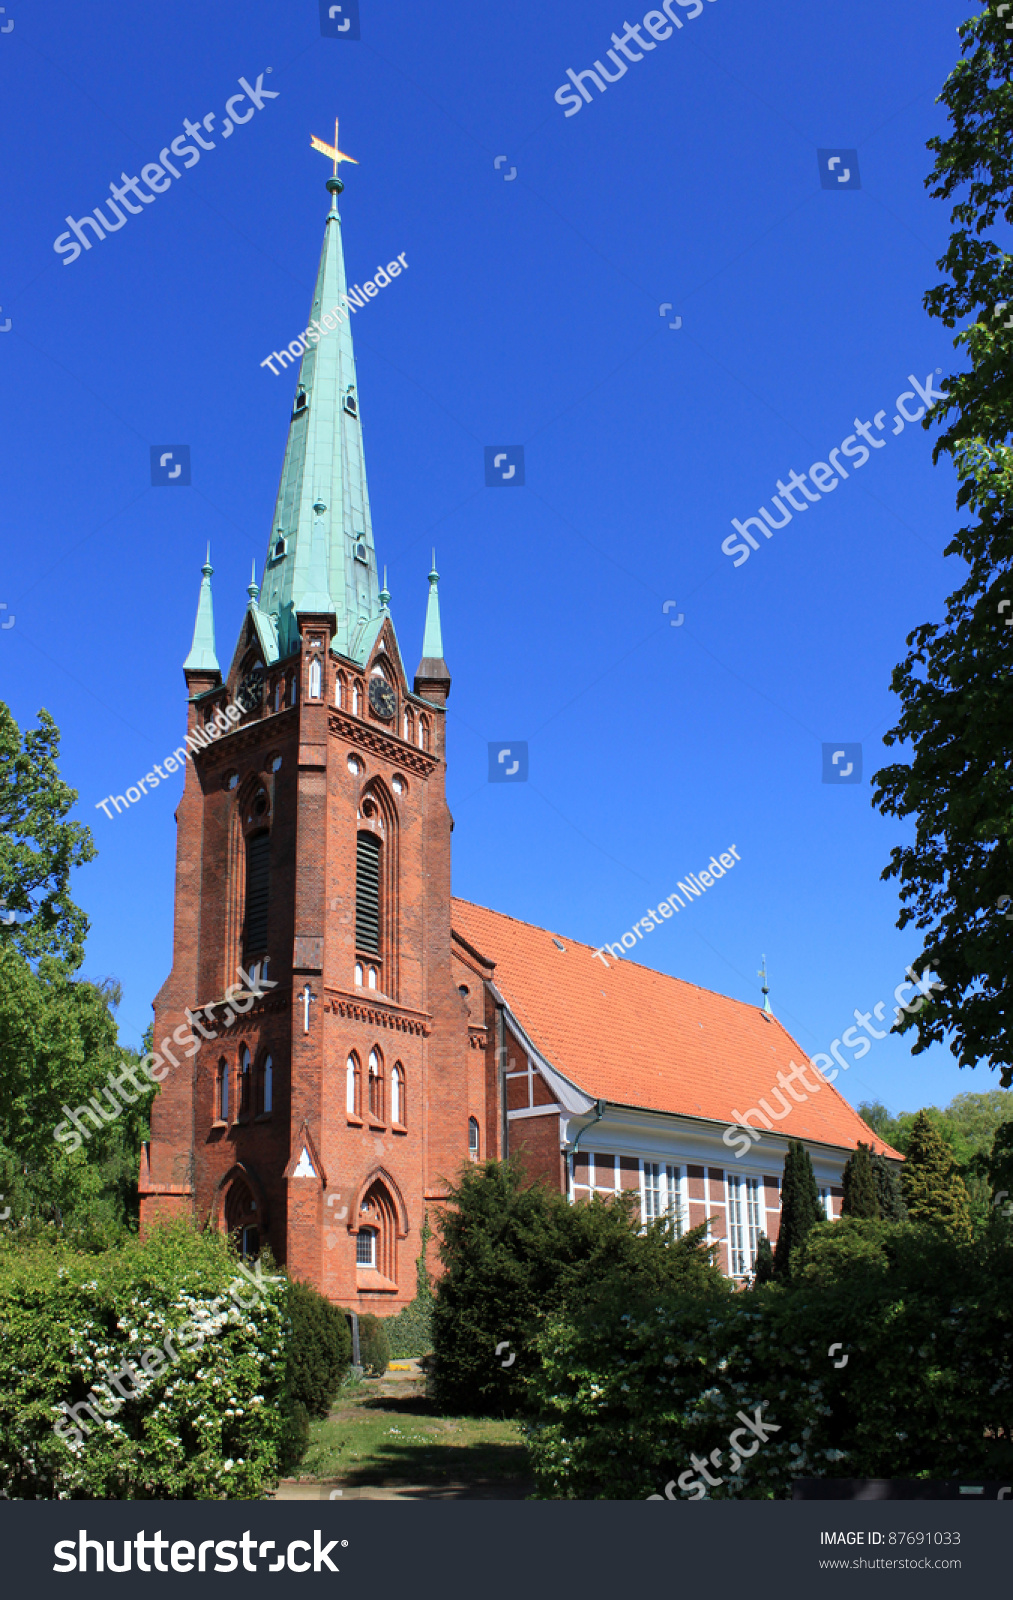 st nikolai kirche in hamburg moorfleet stock photo 87691033 shutterstock. Black Bedroom Furniture Sets. Home Design Ideas